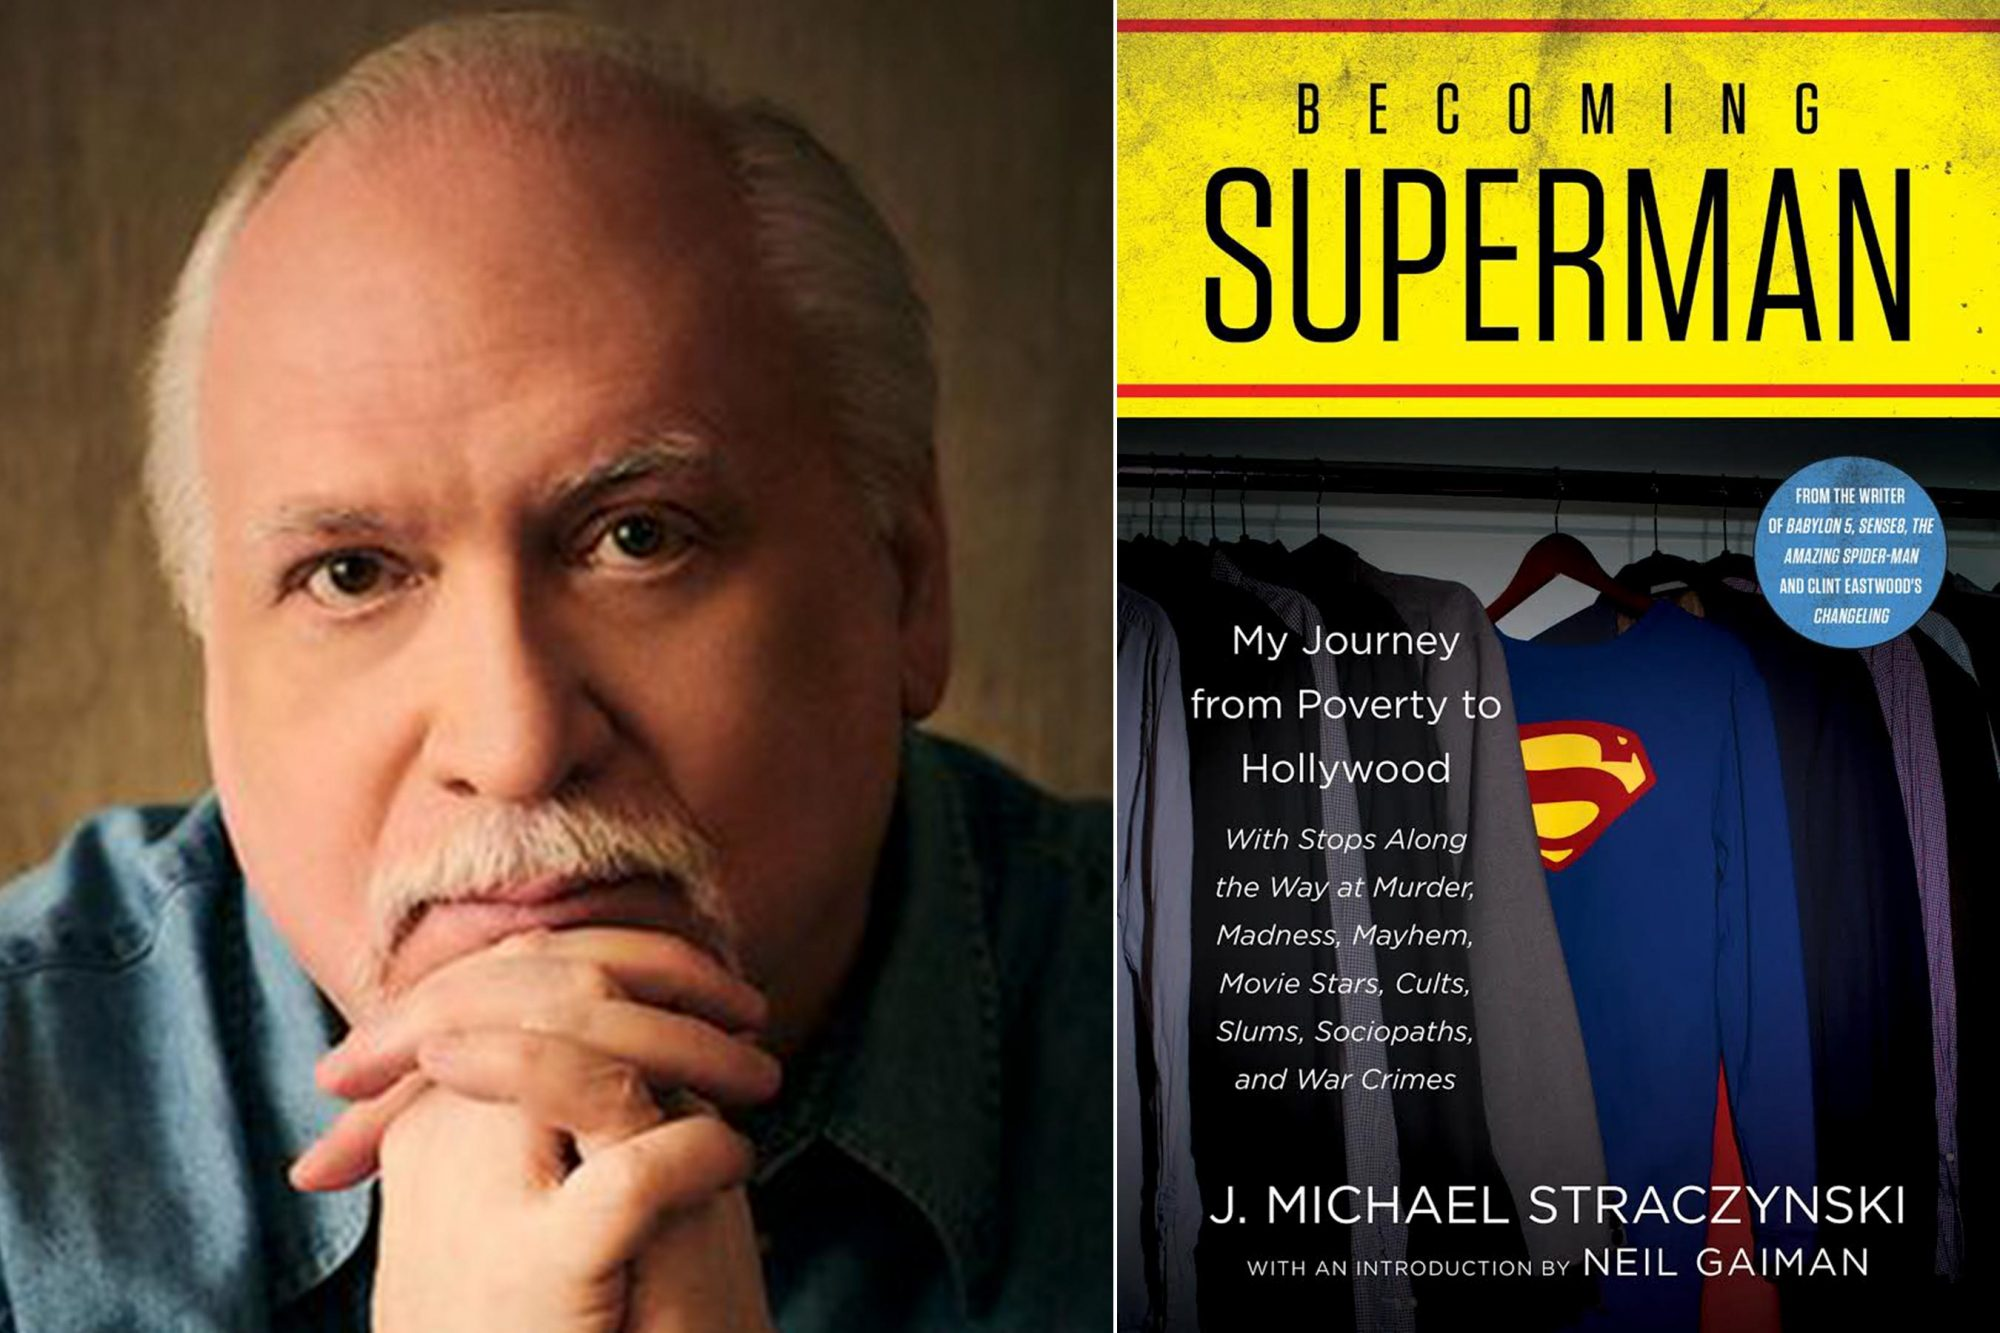 J. Michael Straczynski author photo CR: Peter Konerko Becoming Superman by J. Michael Straczynski CR: HarperCollins